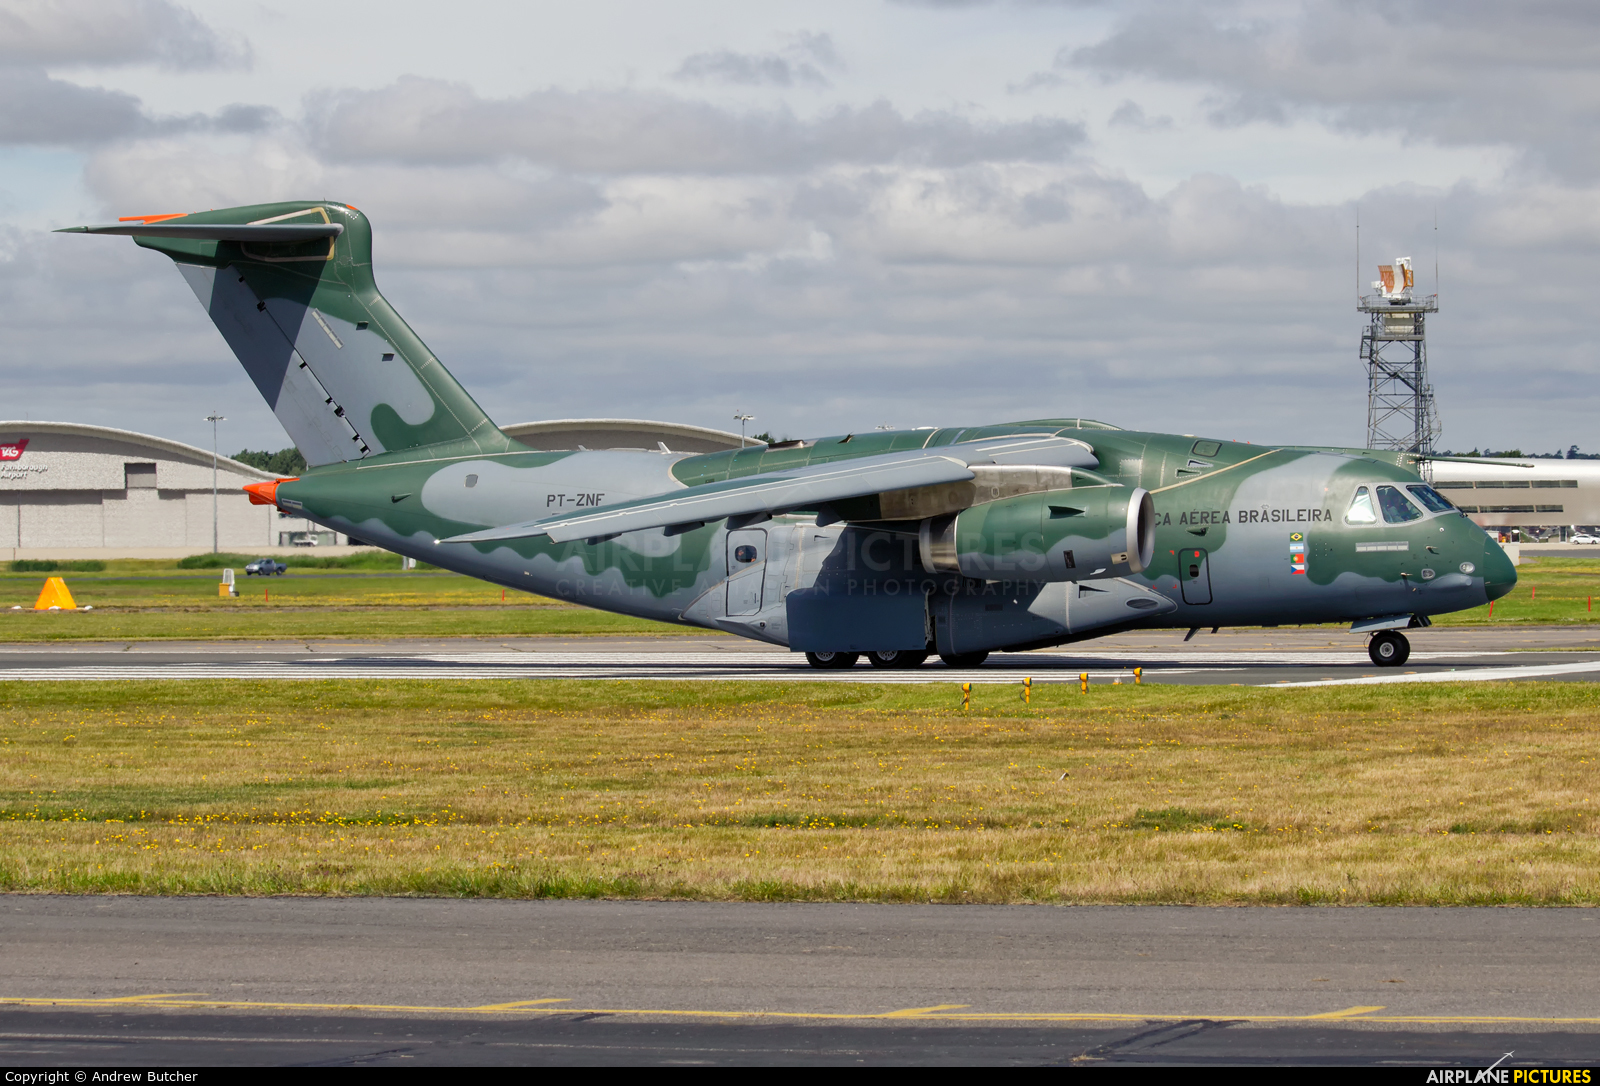 Brazil - Air Force PT-ZNF aircraft at Farnborough